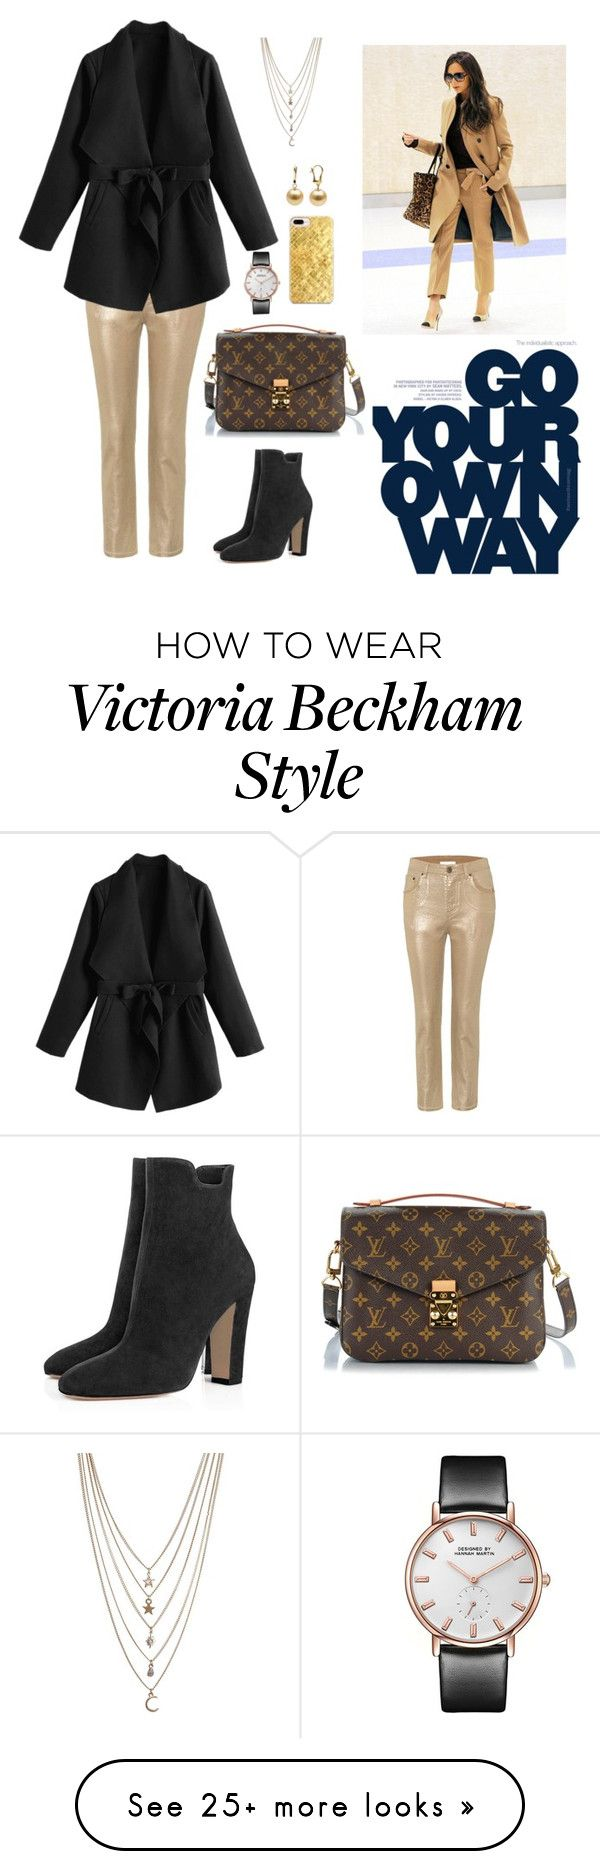 """""""Go your own way!"""" by erlitapd on Polyvore featuring Chloé, Louis Vuitton, Victoria Beckham, Casetify and Ettika"""